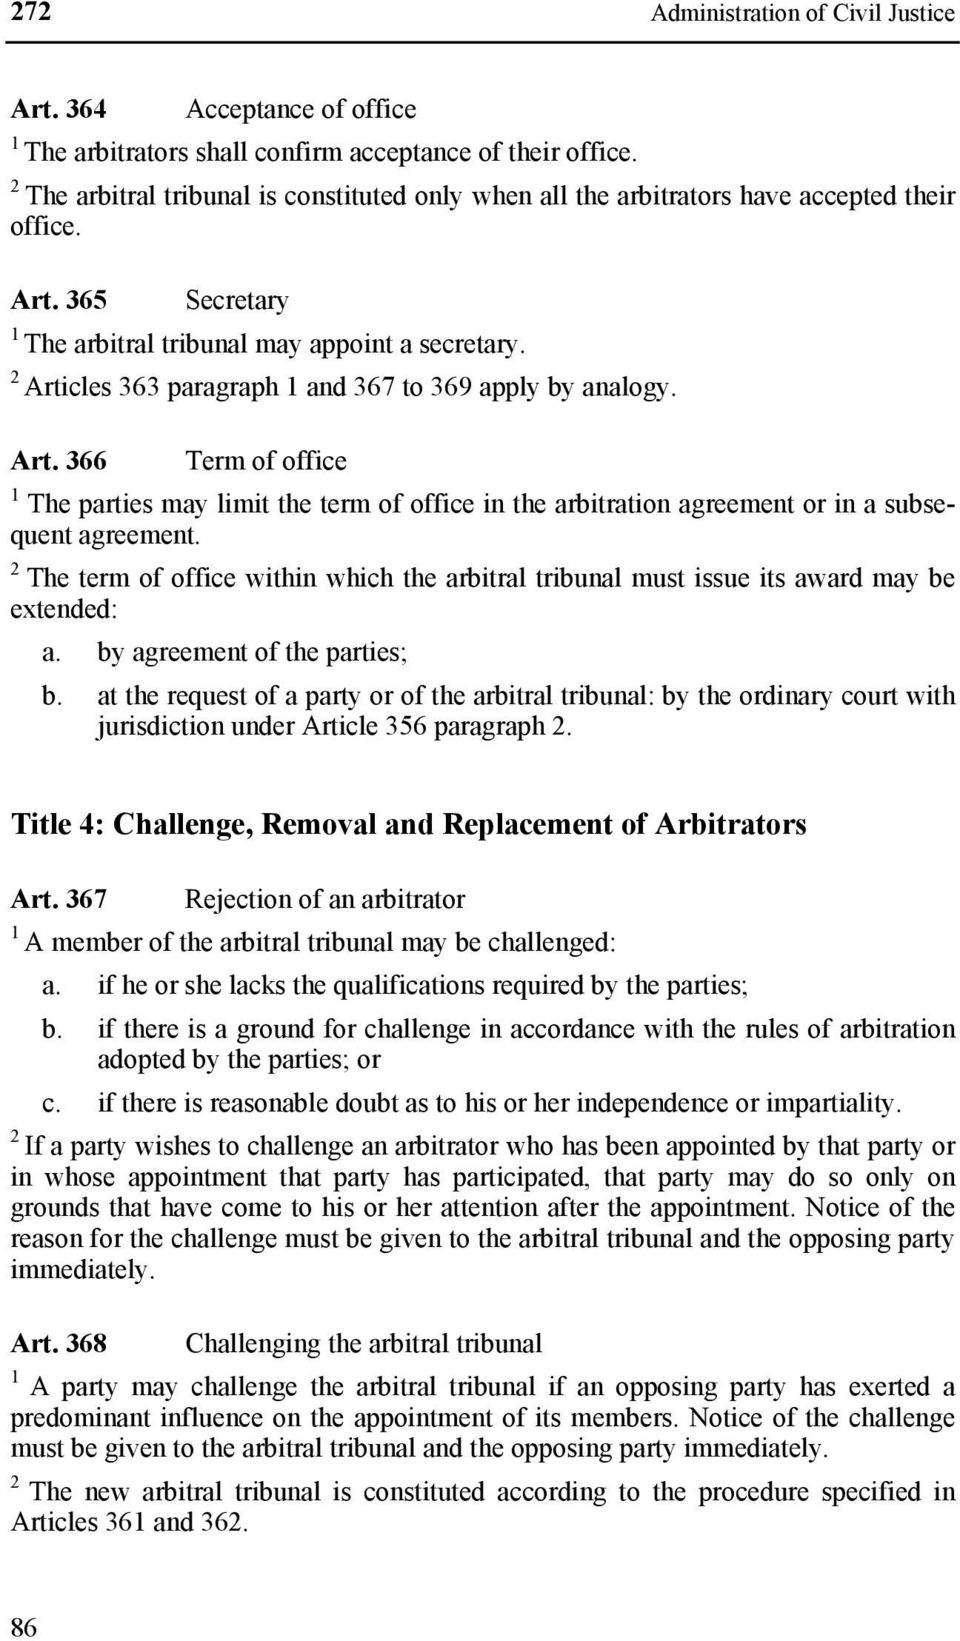 Articles 6 paragraph and 67 to 69 apply by analogy. Art. 66 Term of office The parties may limit the term of office in the arbitration agreement or in a subsequent agreement.